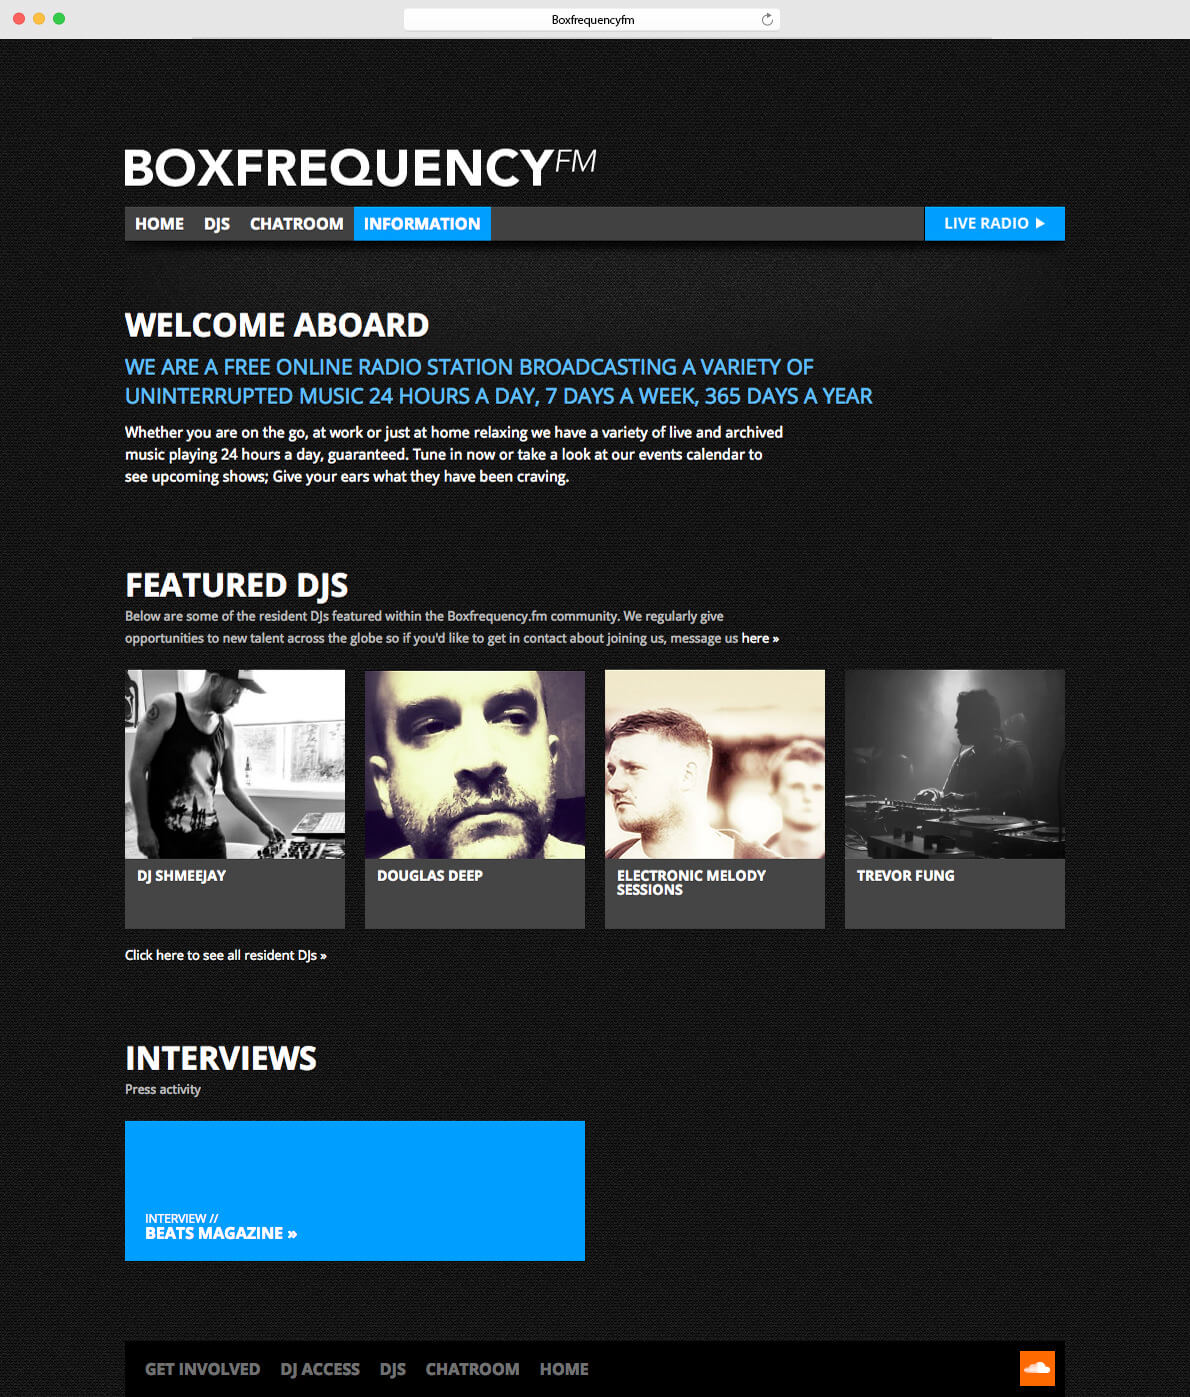 Boxfrequency.fm information page